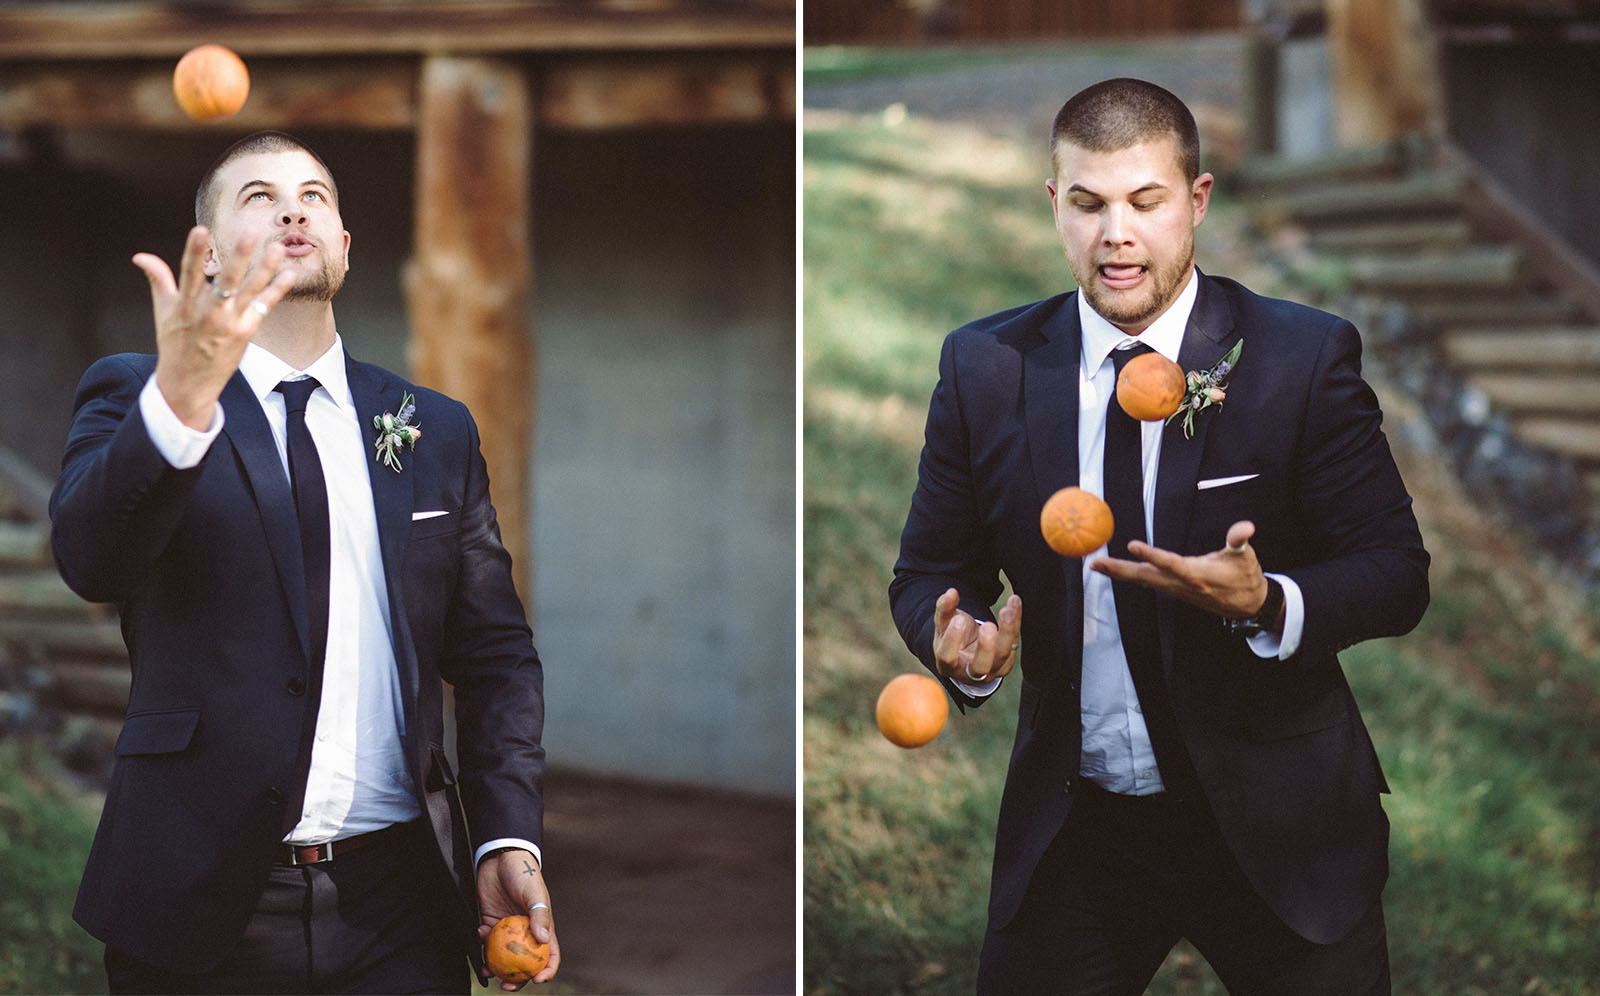 groomsman wedding photograph